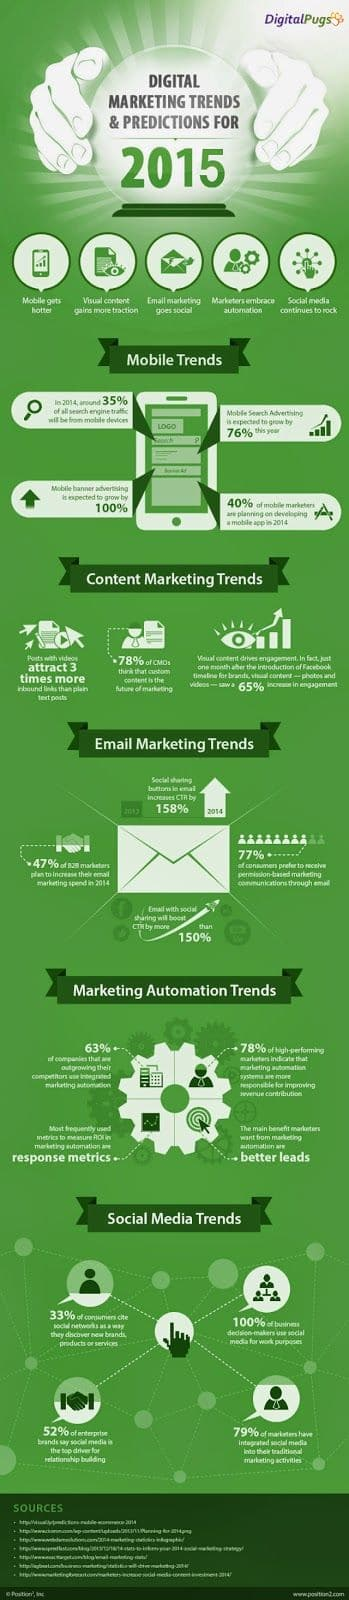 digital-marketing-trends-and-predictions-2015